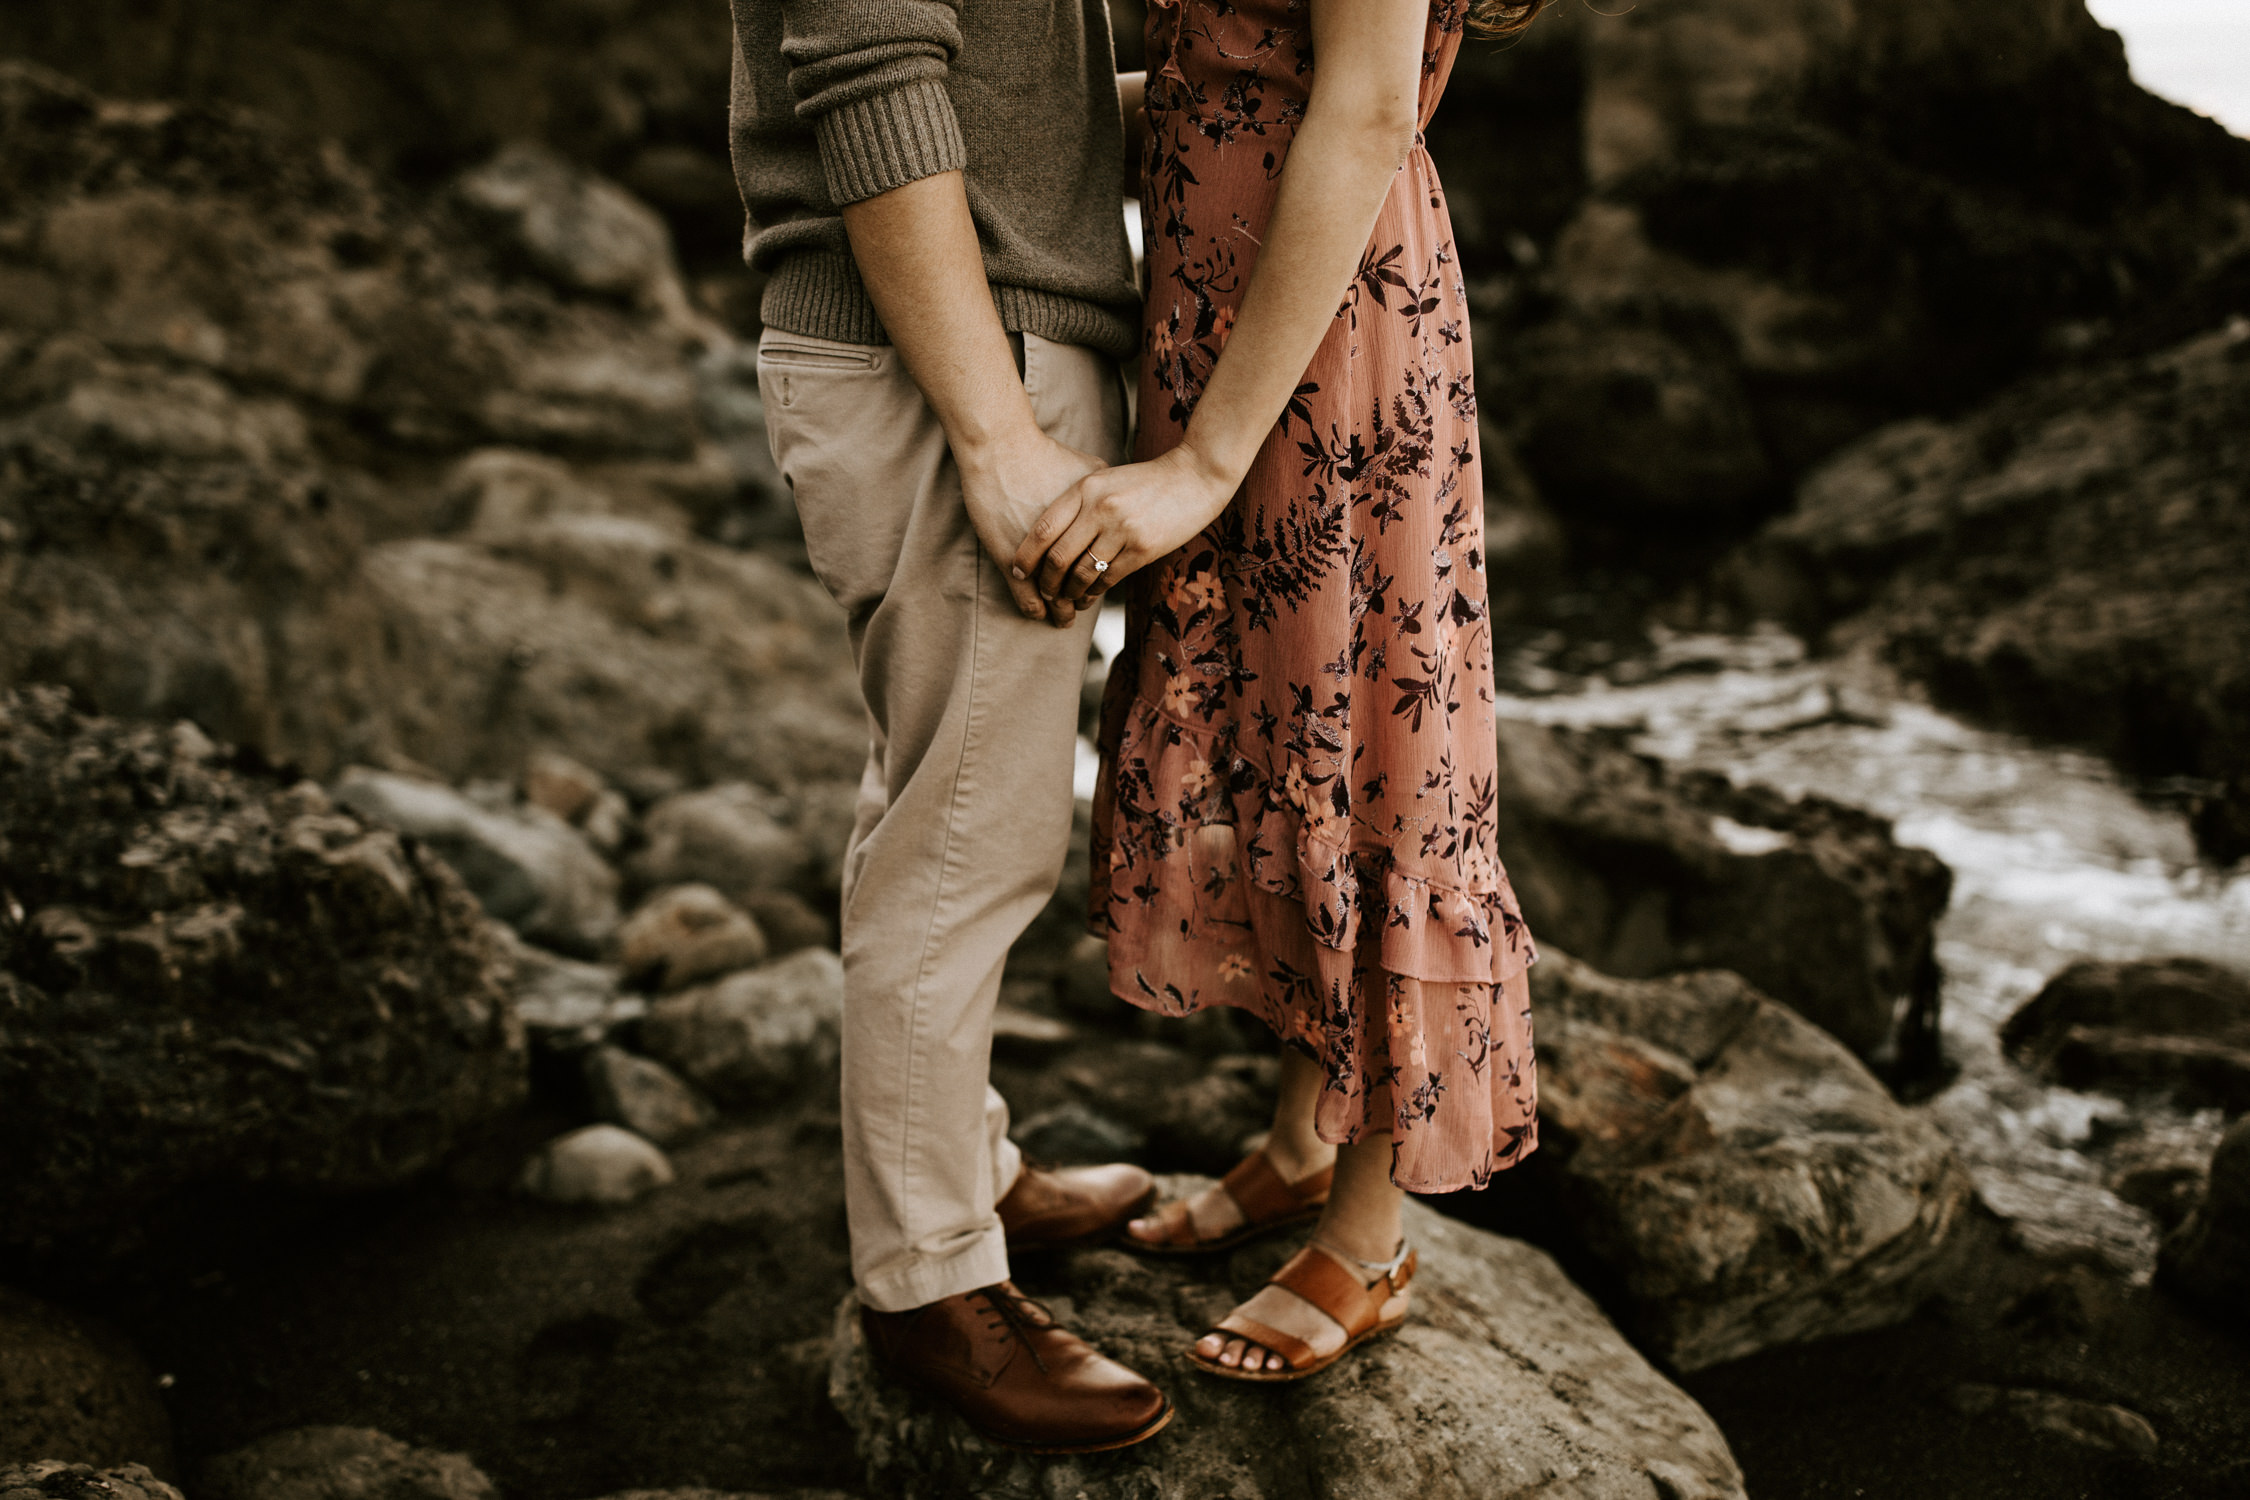 couple-intimate-engagement-session-northern-california-58.jpg